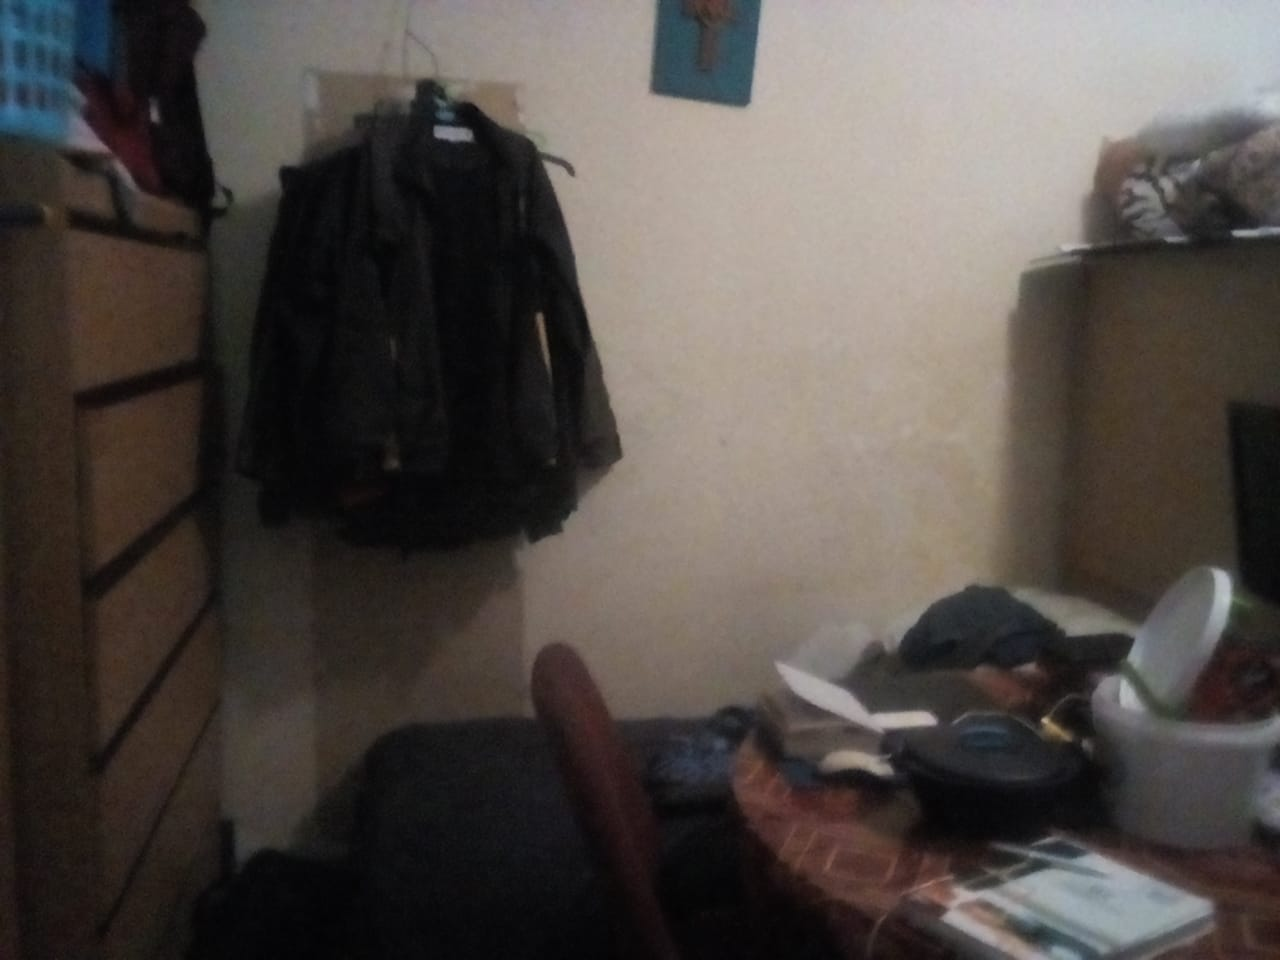 Apartment in Berea & Surrounds - WhatsApp Image 2021-07-21 at 5.40.14 PM.jpeg